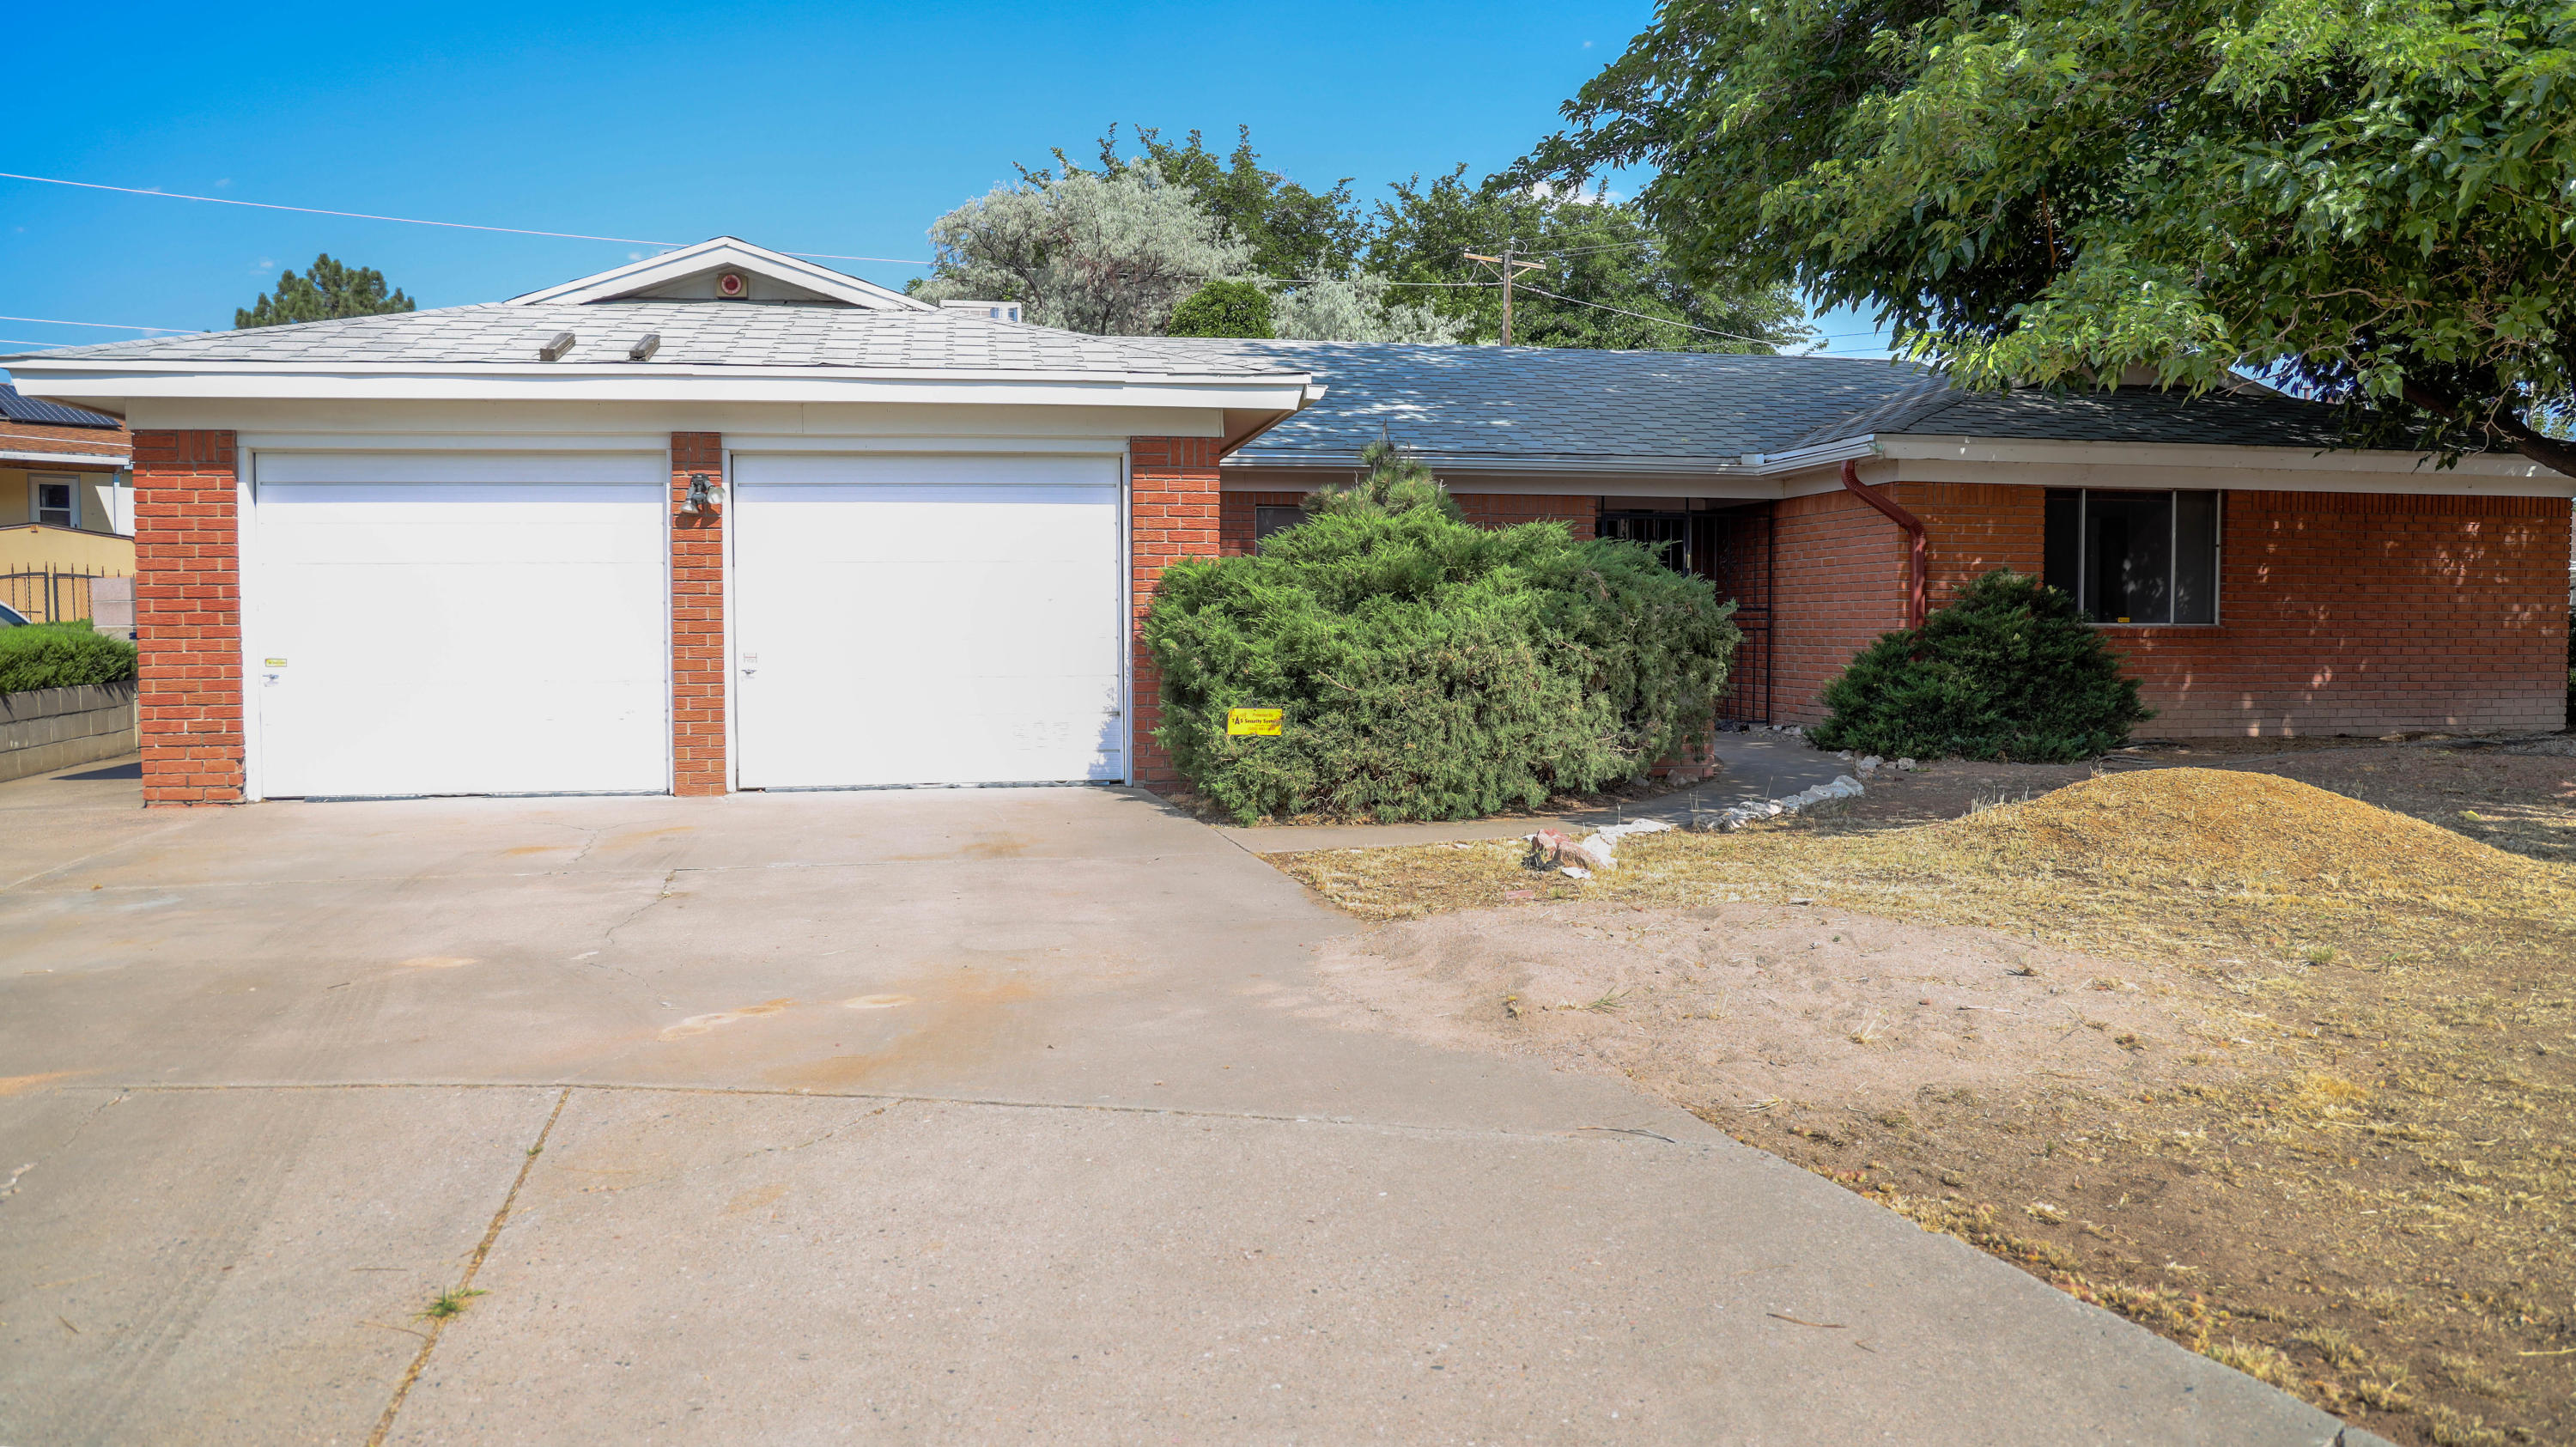 4 bed 2 bath single story home in a cul de sac! Great area with tons of potential! This home almost sits on a quarter acre lot, includes two car garage, spacious bedrooms and plenty of living space. Needs some TLC and is ready for new owner!